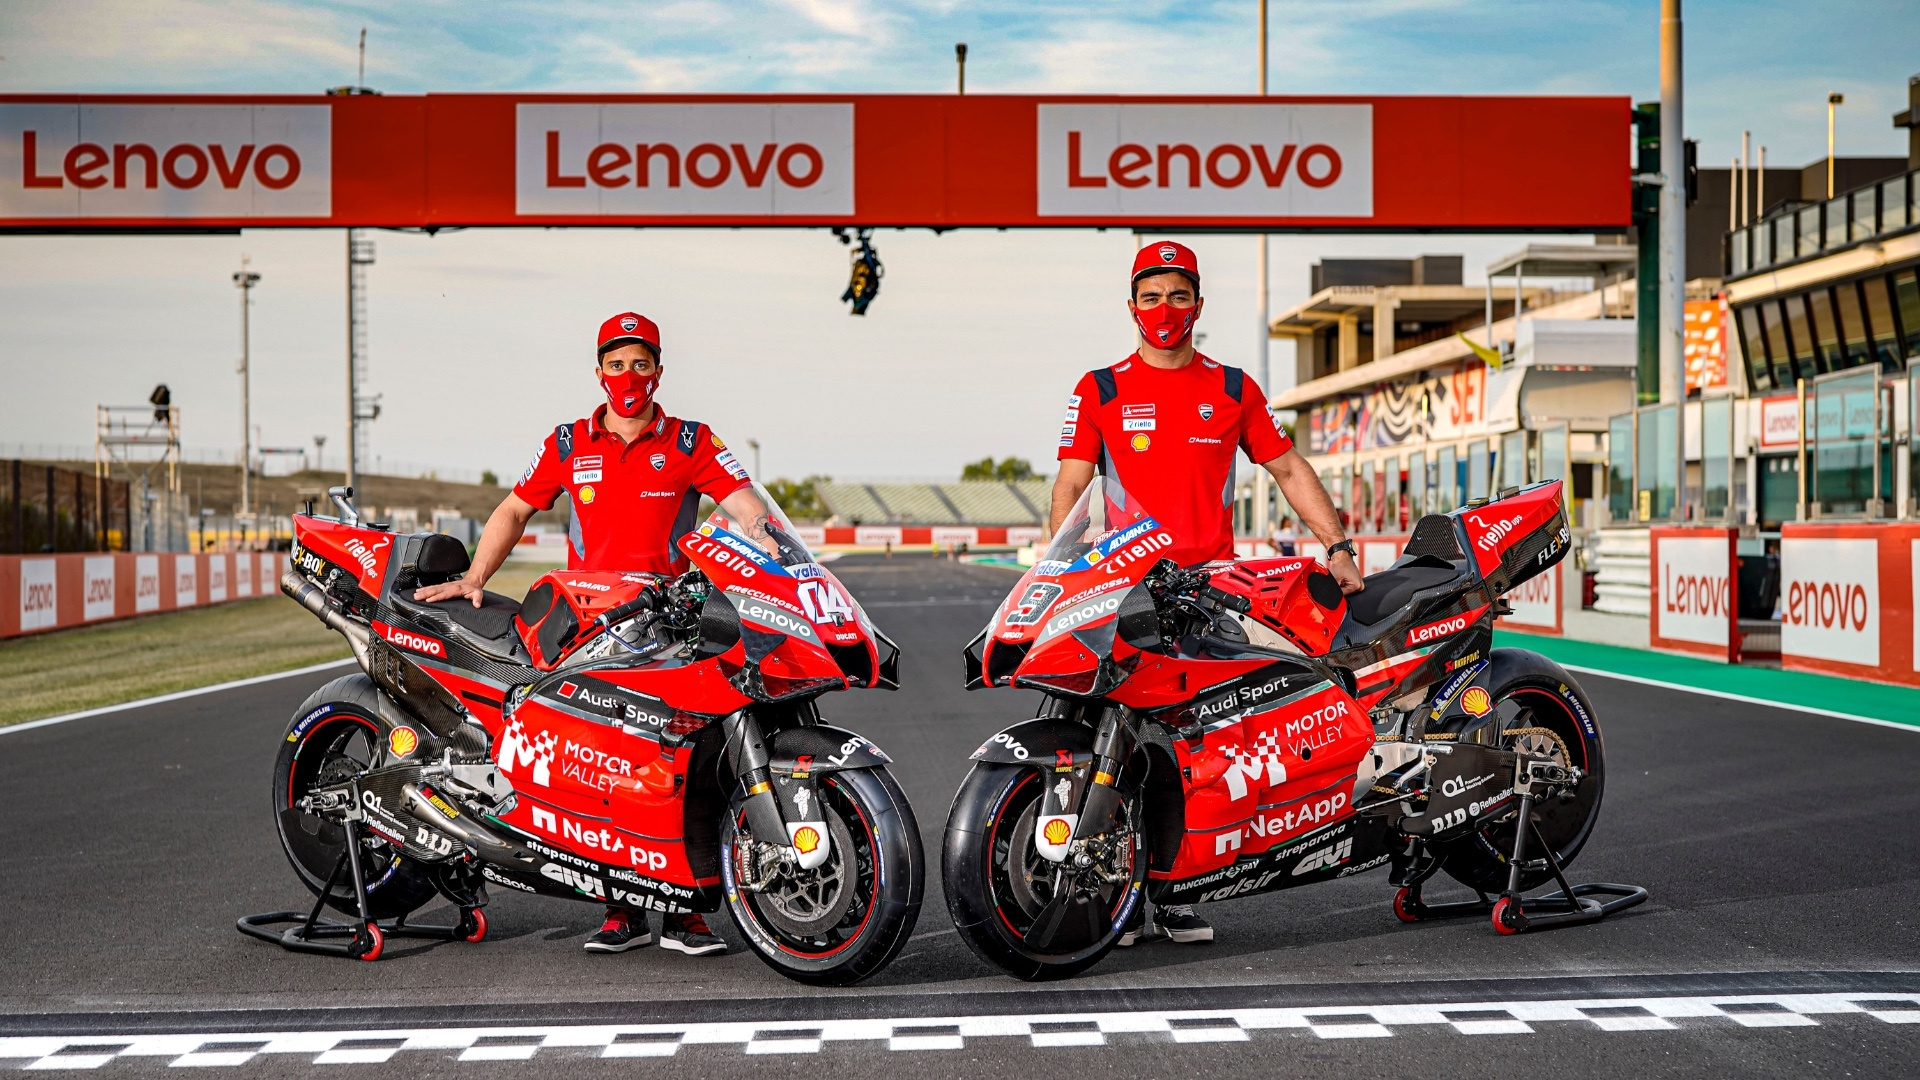 The Motor Valley logo on the fairings of the Ducati Desmosedici GP during the two MotoGP races in Misano.